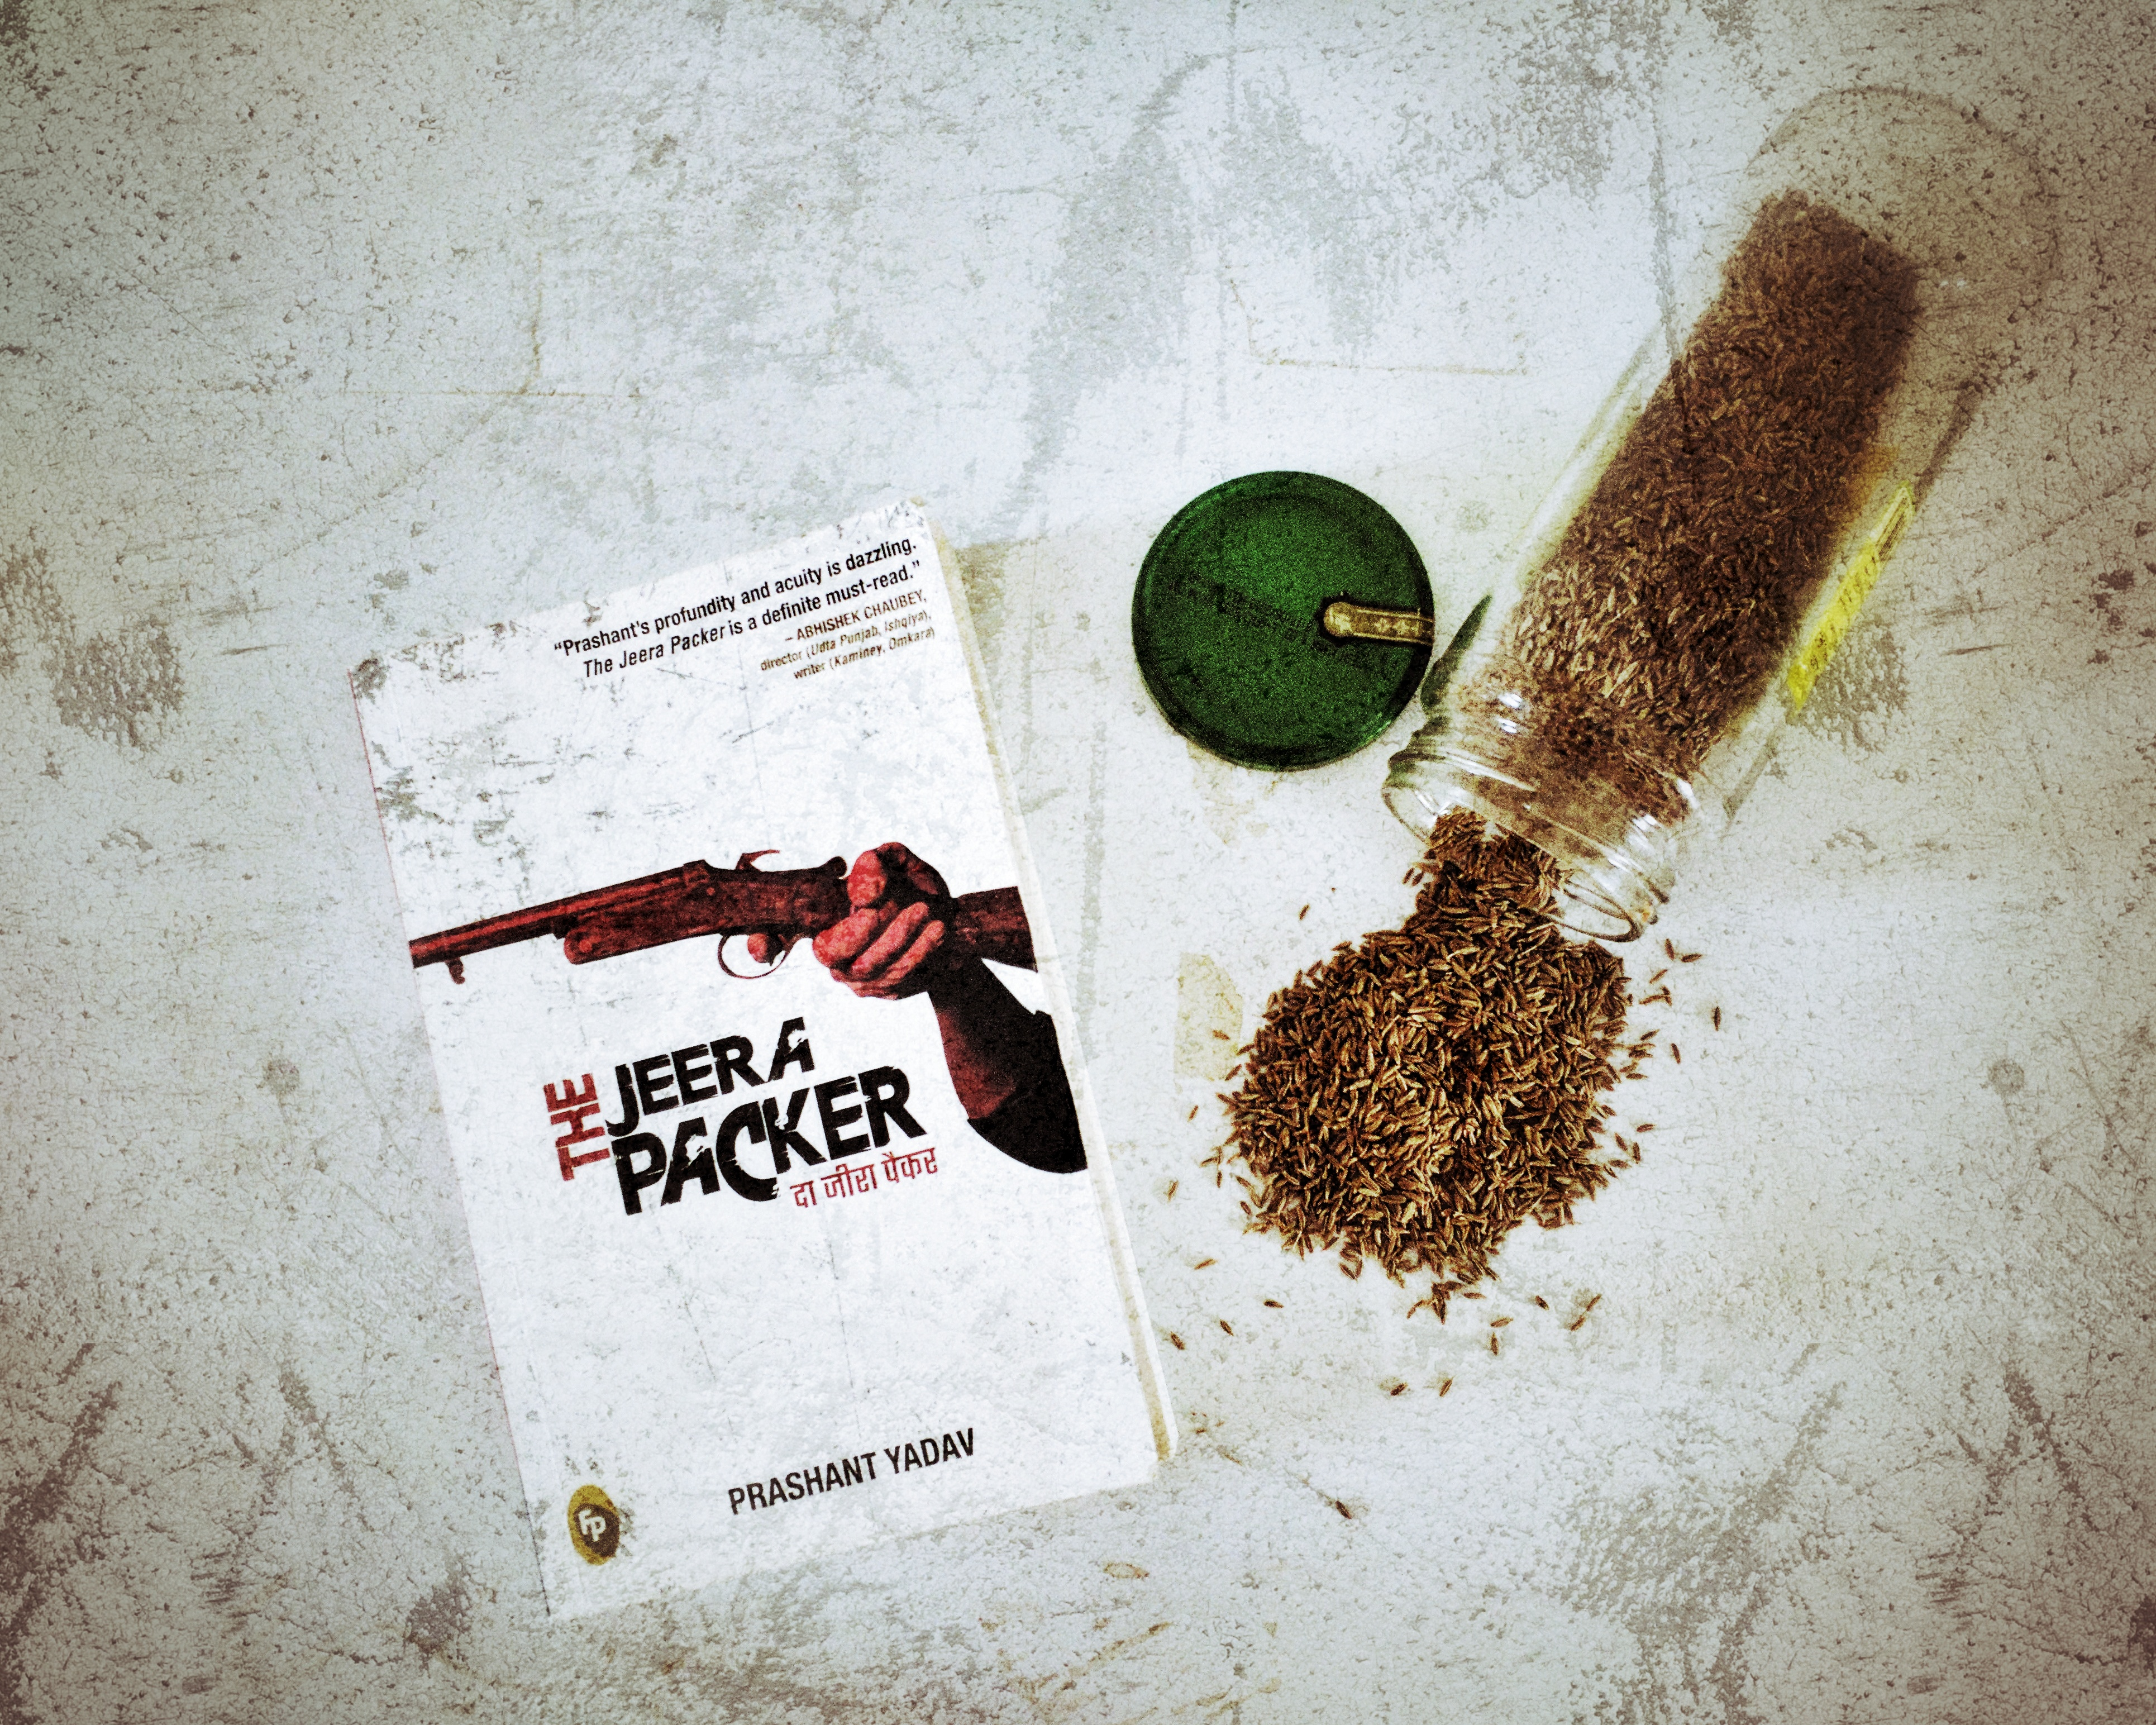 The Jeera Packer by Prashant Yadav